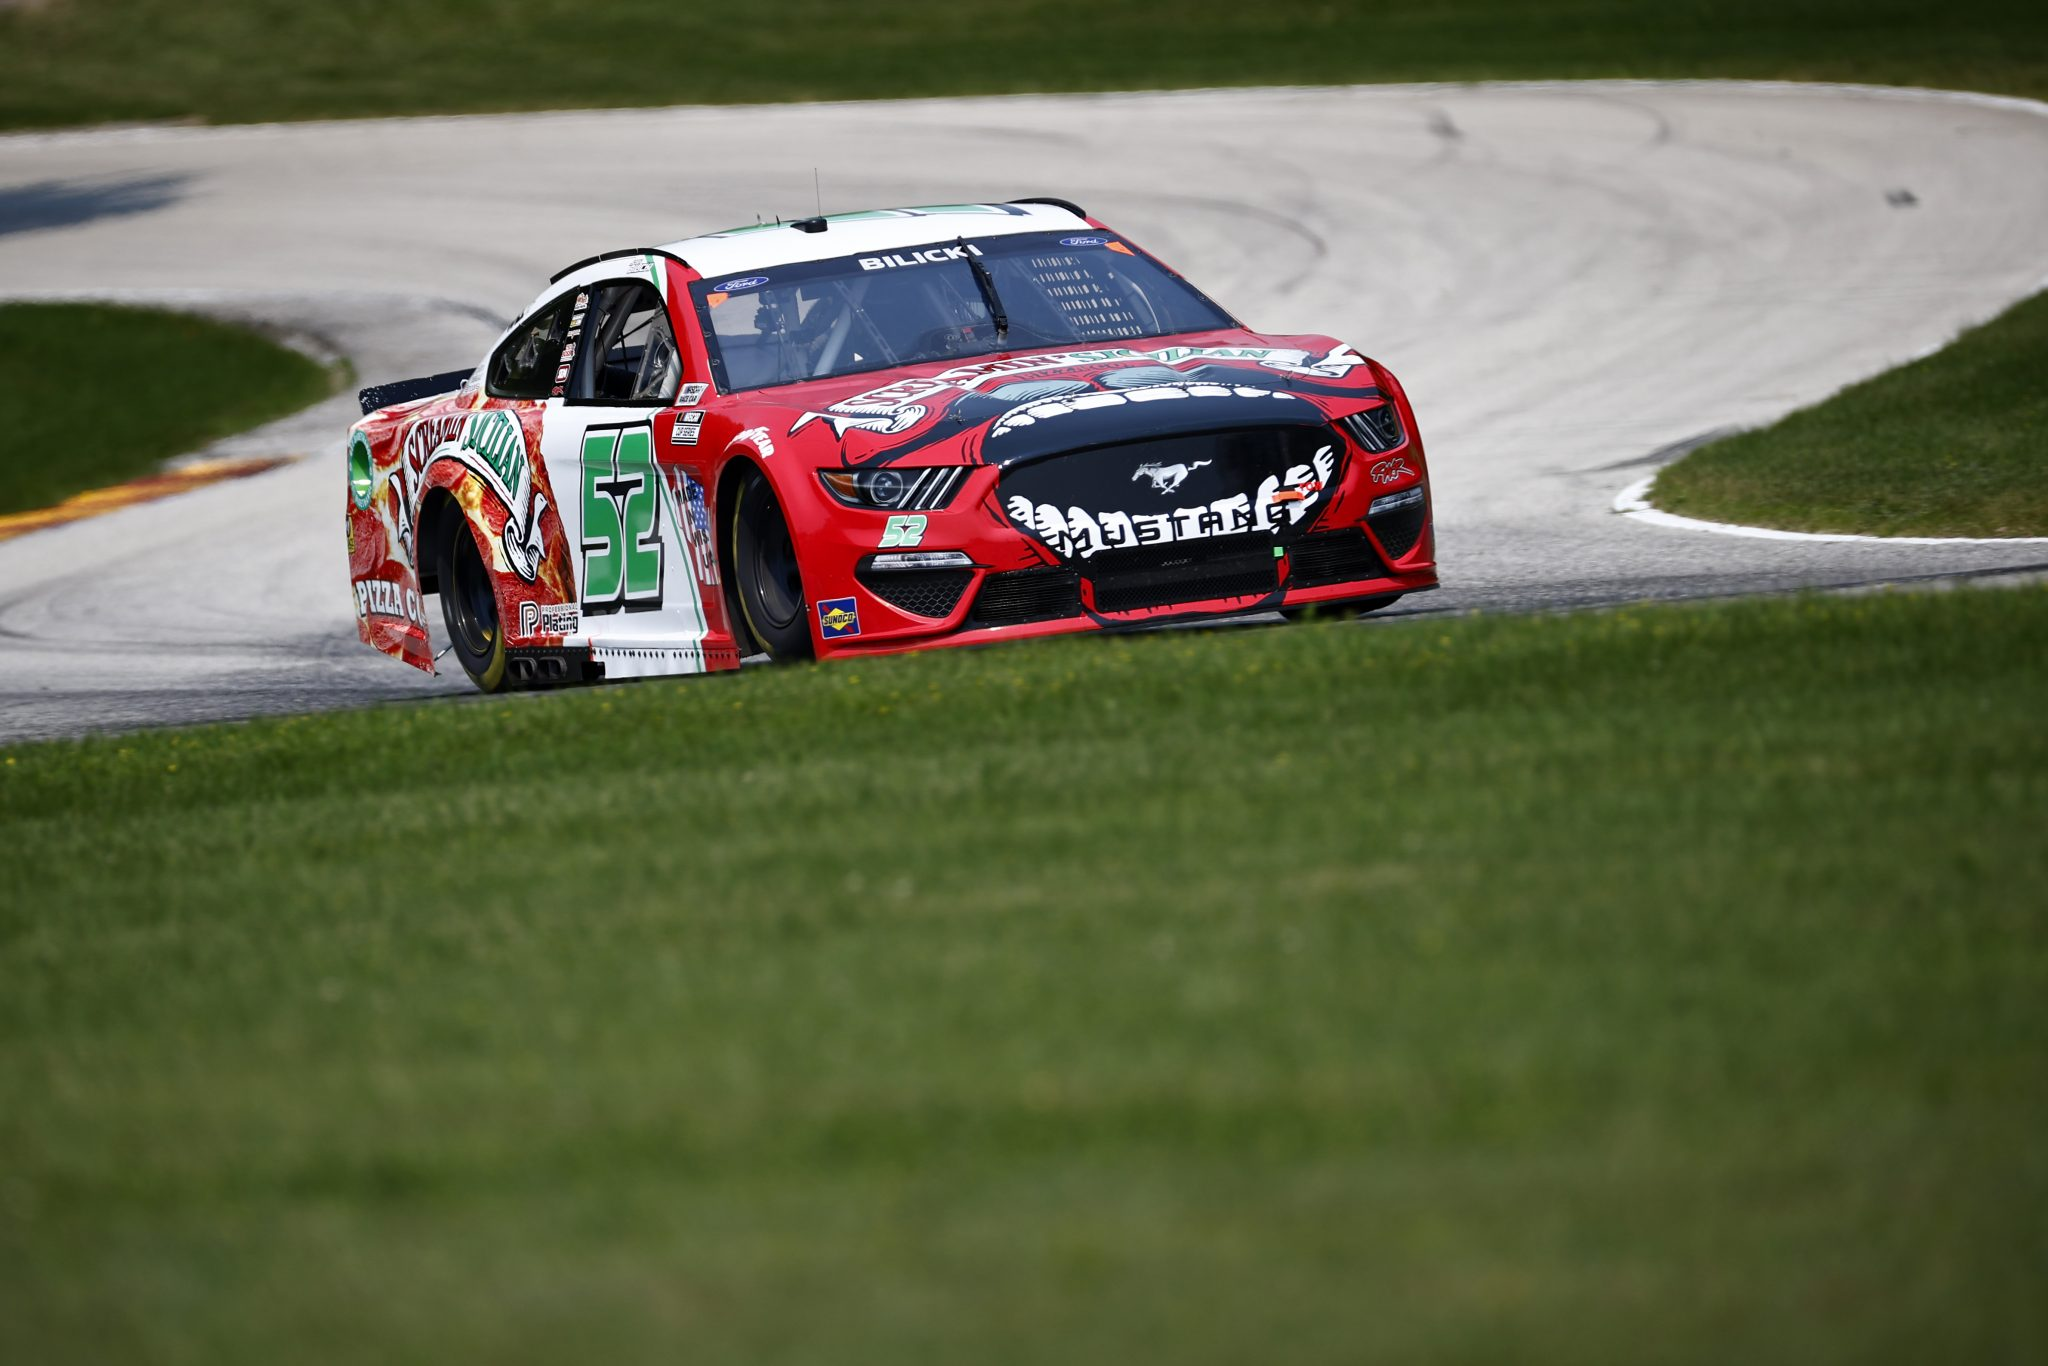 ELKHART LAKE, WISCONSIN - JULY 03: Josh Bilicki, driver of the #52 Screamin Sicilian Pizza Co Ford, drives during practice for the NASCAR Cup Series Jockey Made in America 250 Presented by Kwik Trip at Road America on July 03, 2021 in Elkhart Lake, Wisconsin. (Photo by Jared C. Tilton/Getty Images)   Getty Images